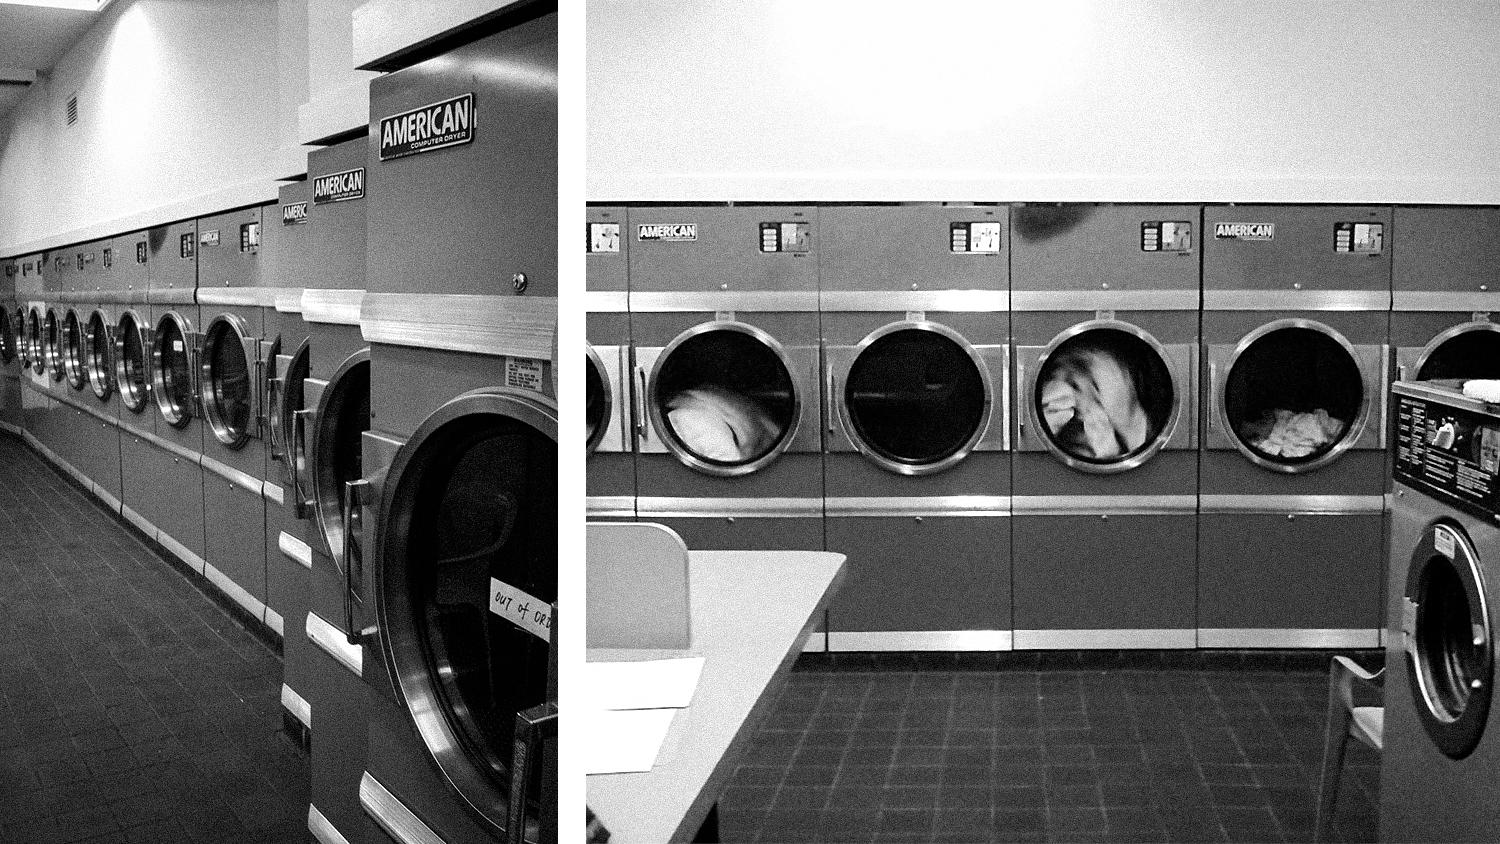 Laundromat_Bare_100_0780-Dryers-Stack_a.jpg